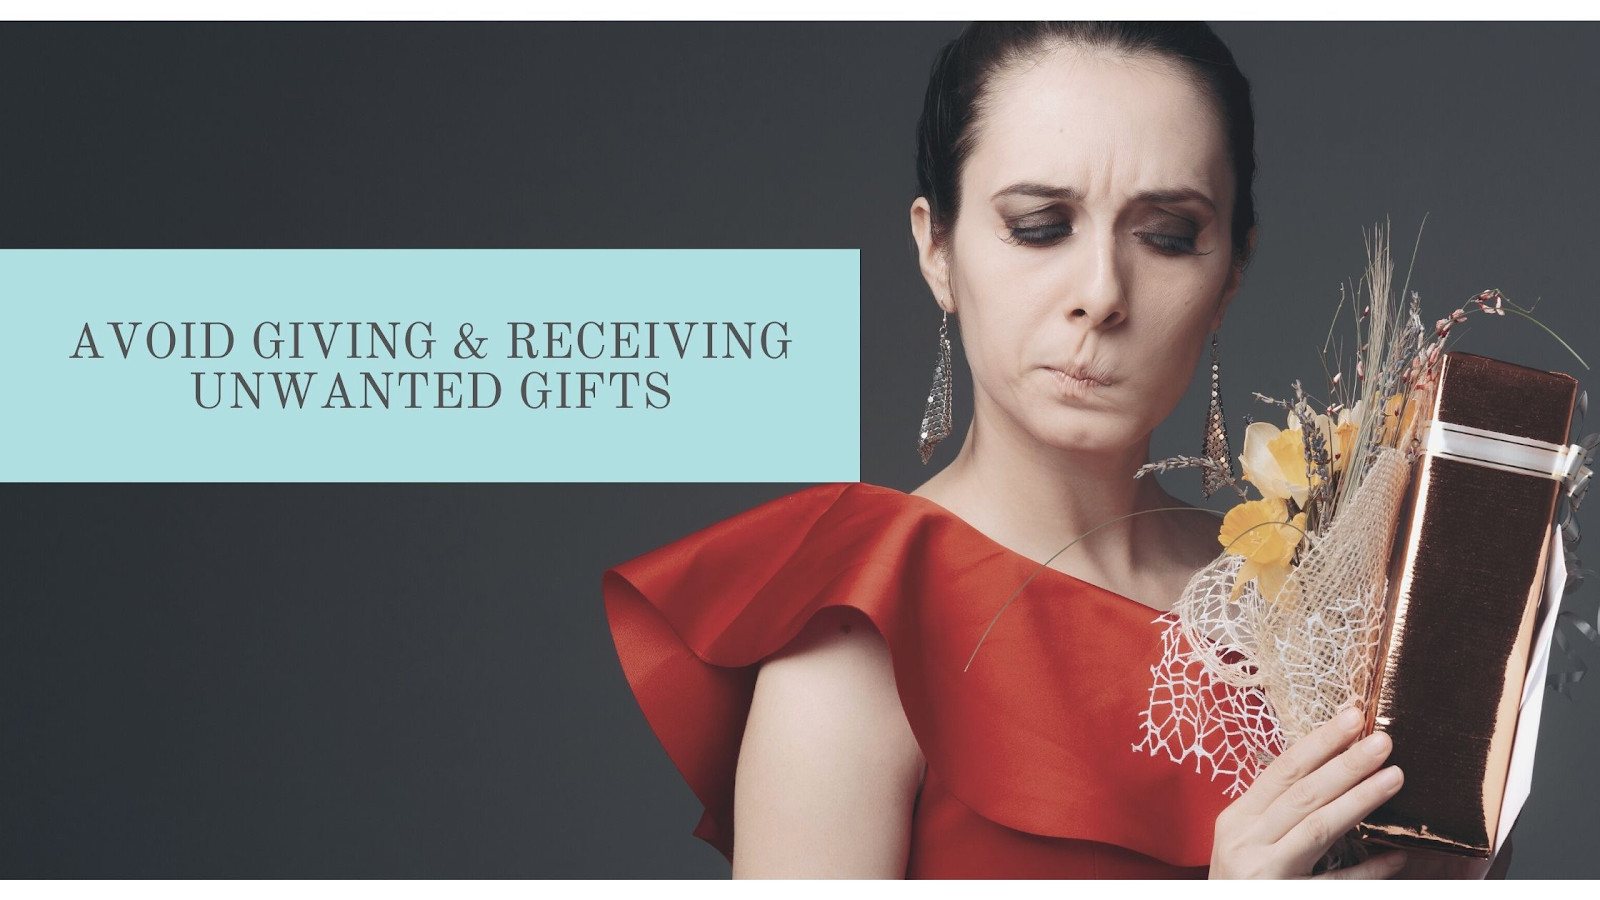 Stop the Cycle of Giving and Receiving Unwanted Gifts